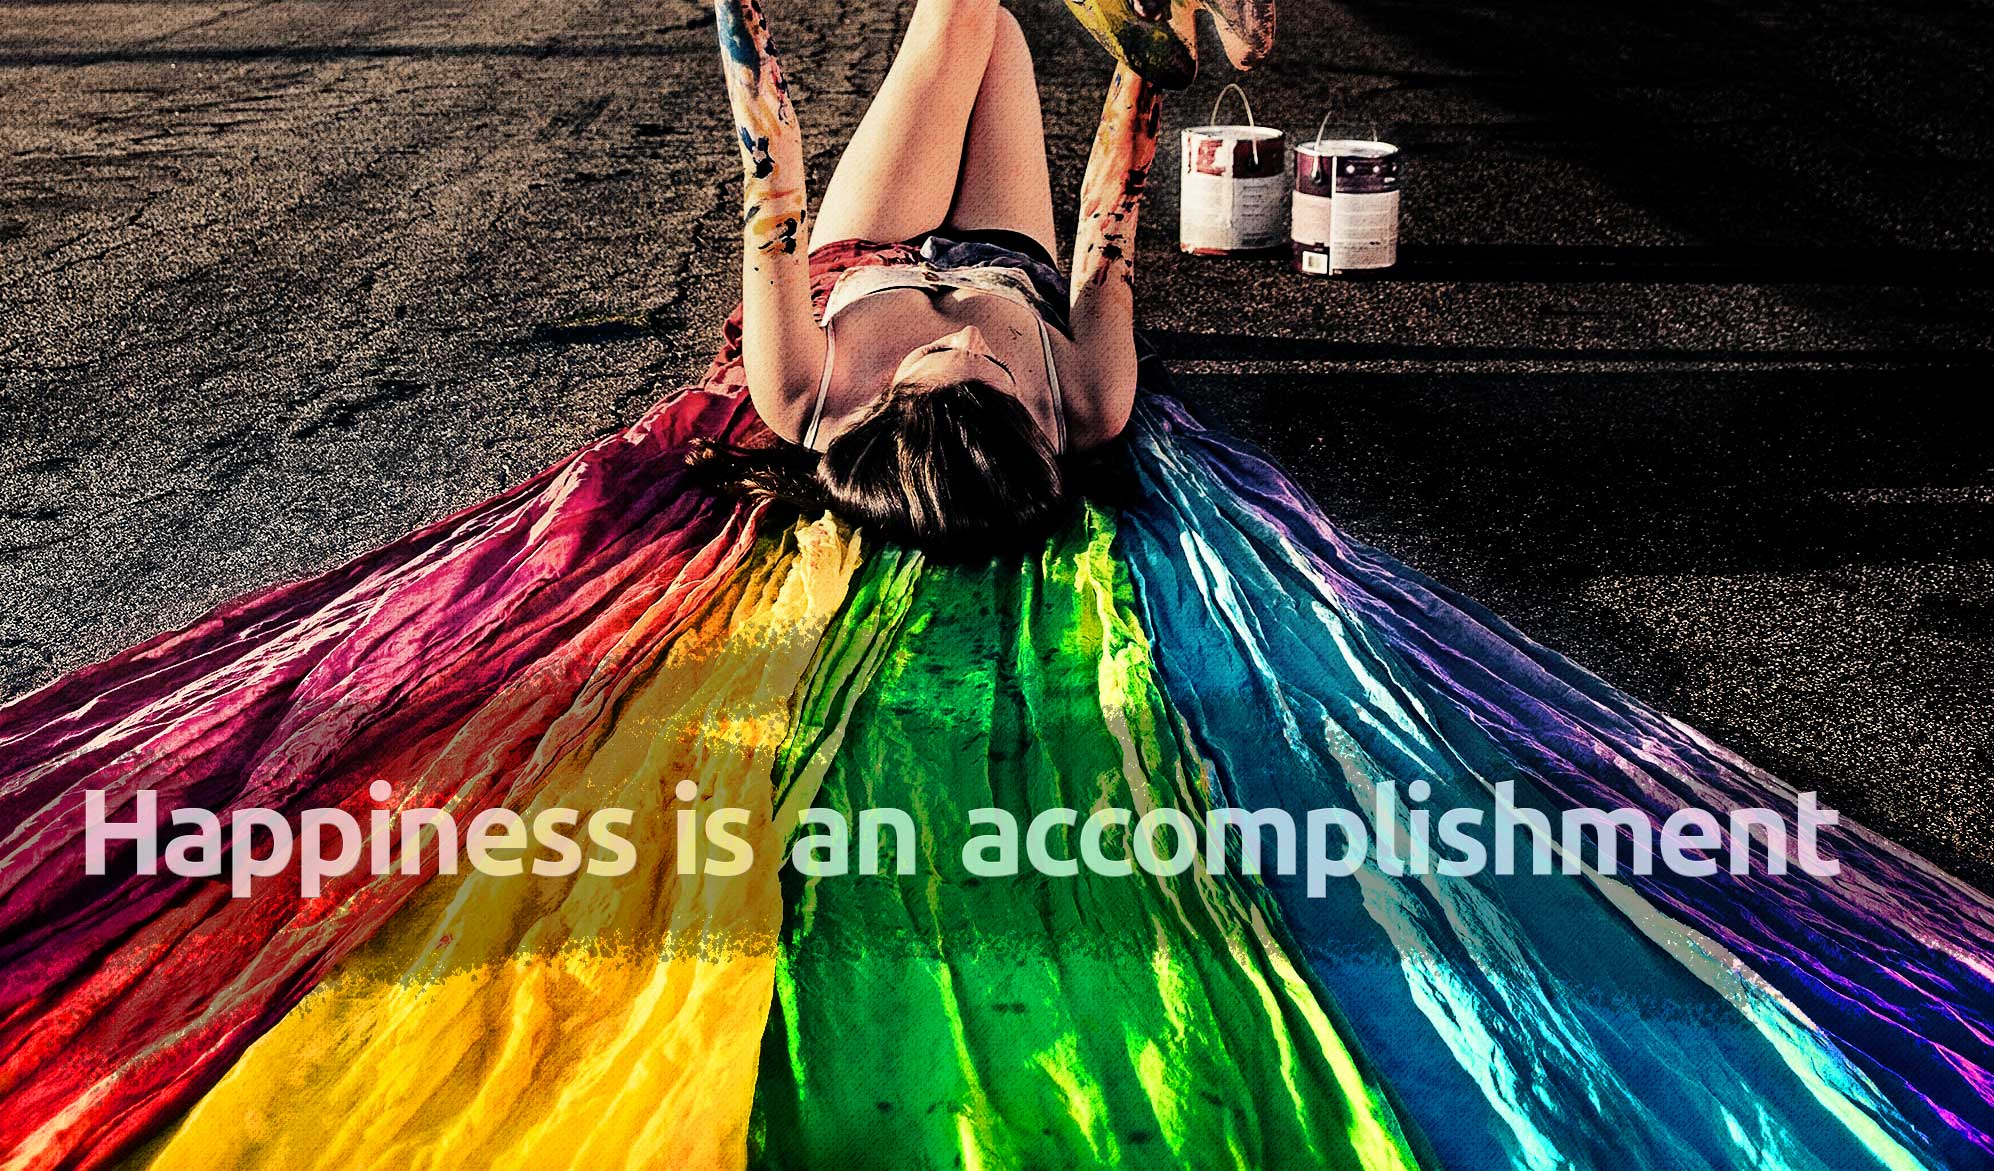 daily inspirational quote image:a woman lying on a rainbow colored banner, with paint on her body